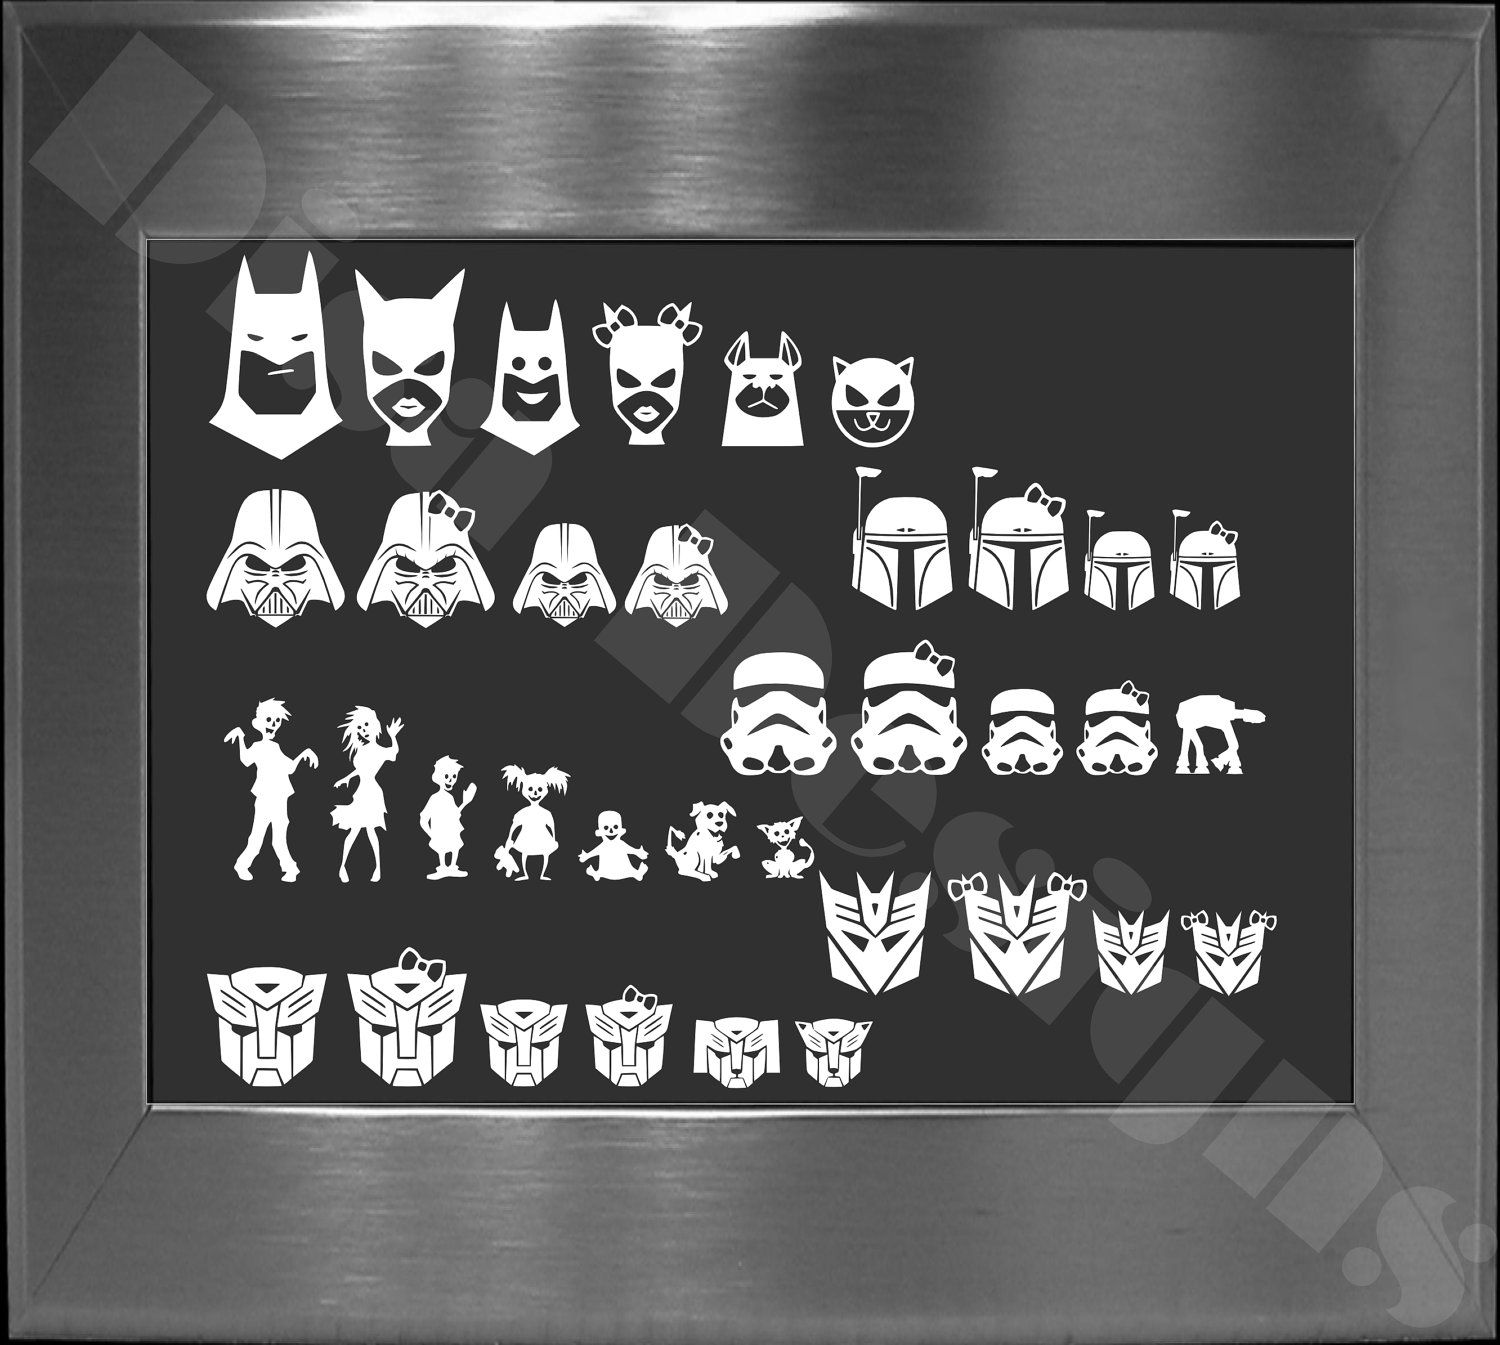 One Extra Batman Star Wars Zombie Or Transformer Inspired Family Member Vinyl Decal Please Read Descriptio Family Decals Vinyl Decals Special Occasion Gift [ 1345 x 1500 Pixel ]